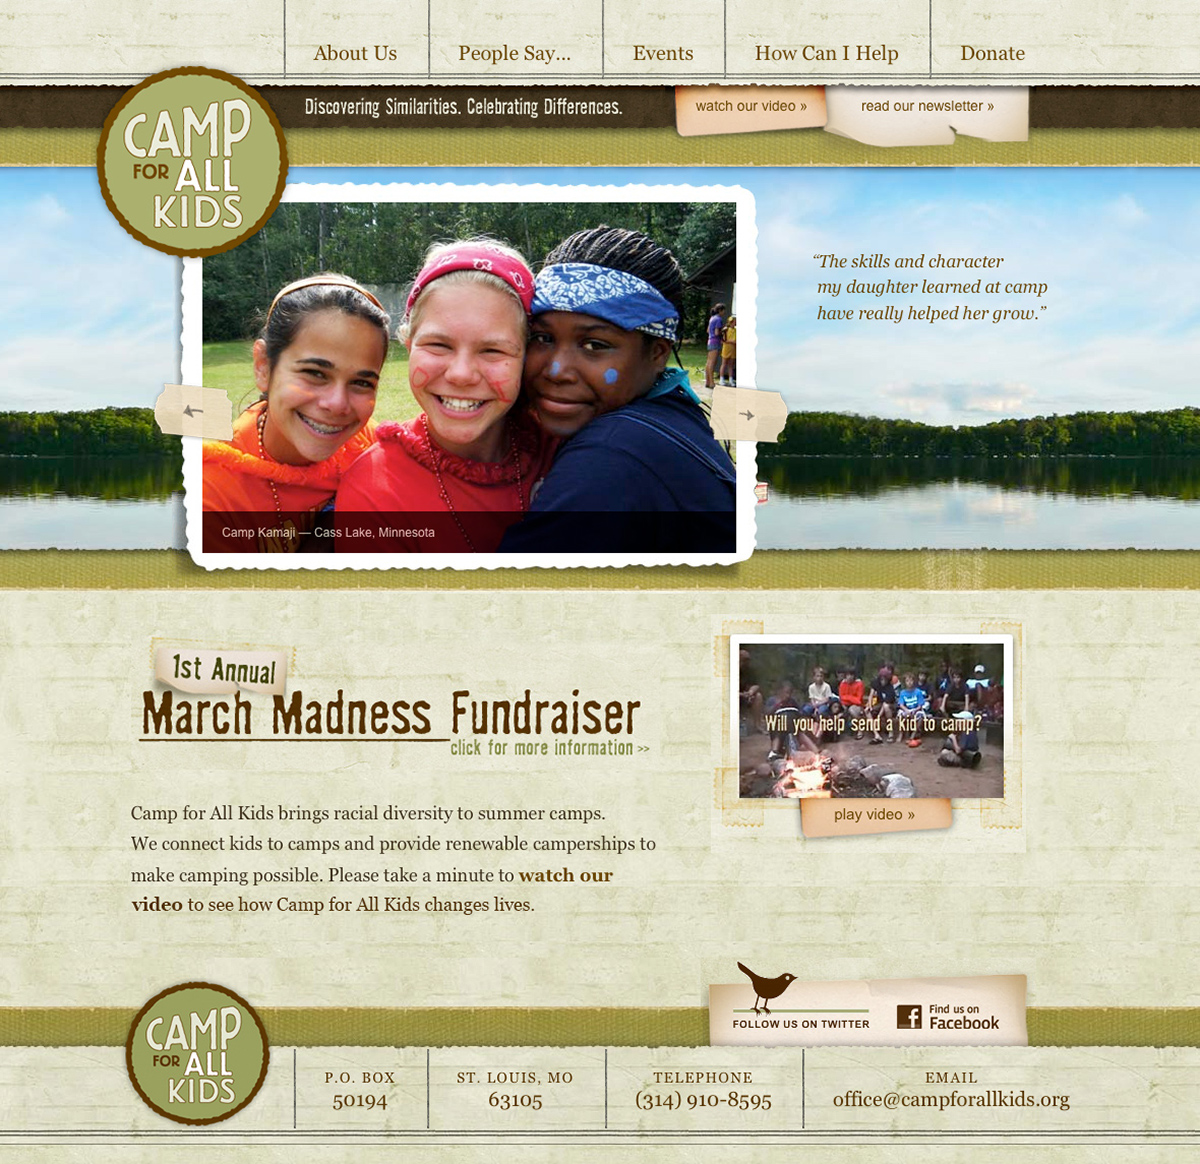 Camp for All Kids website home page